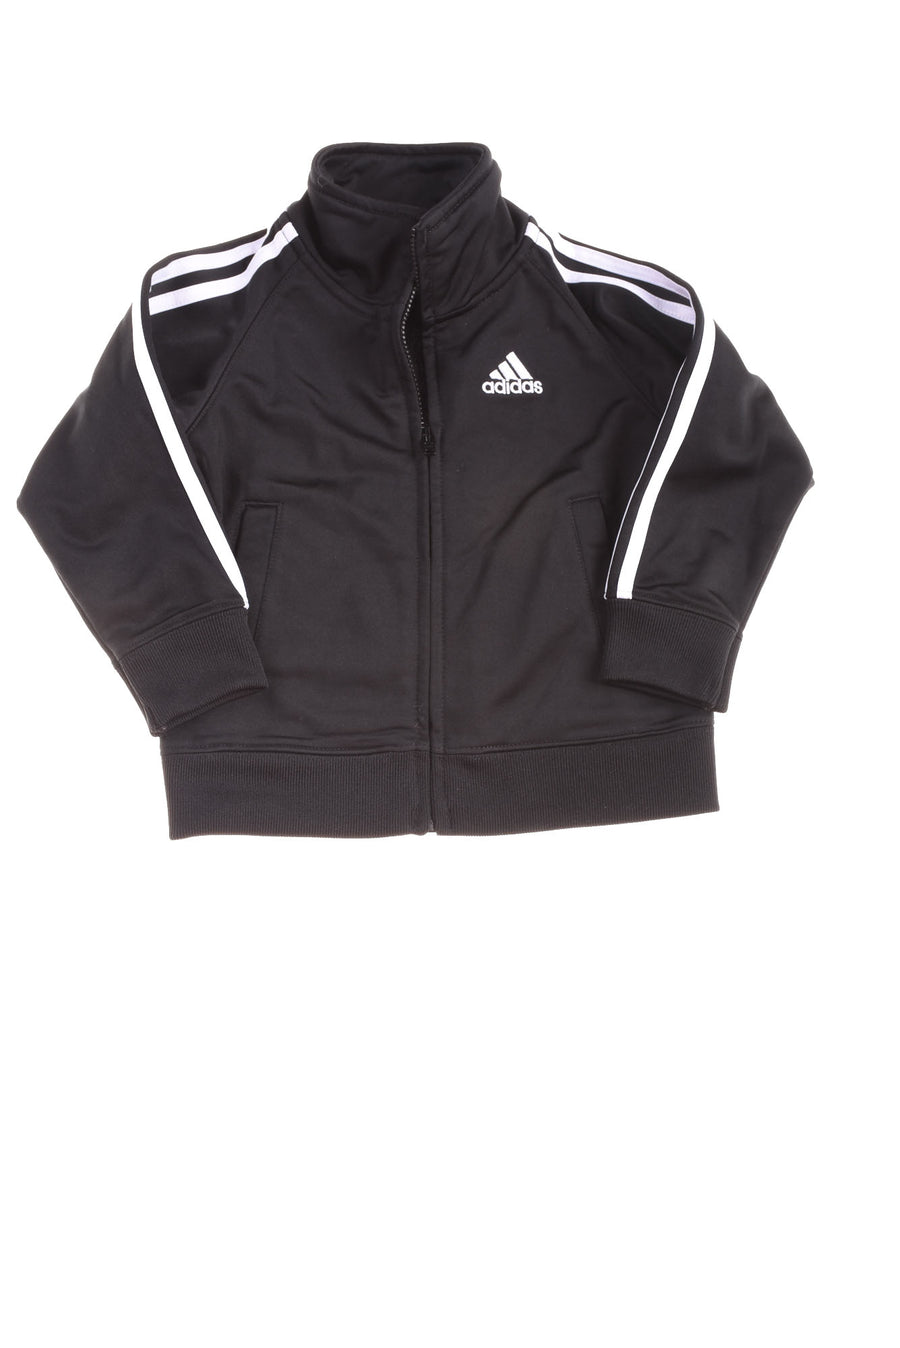 Baby Boy's Jacket By Adidas